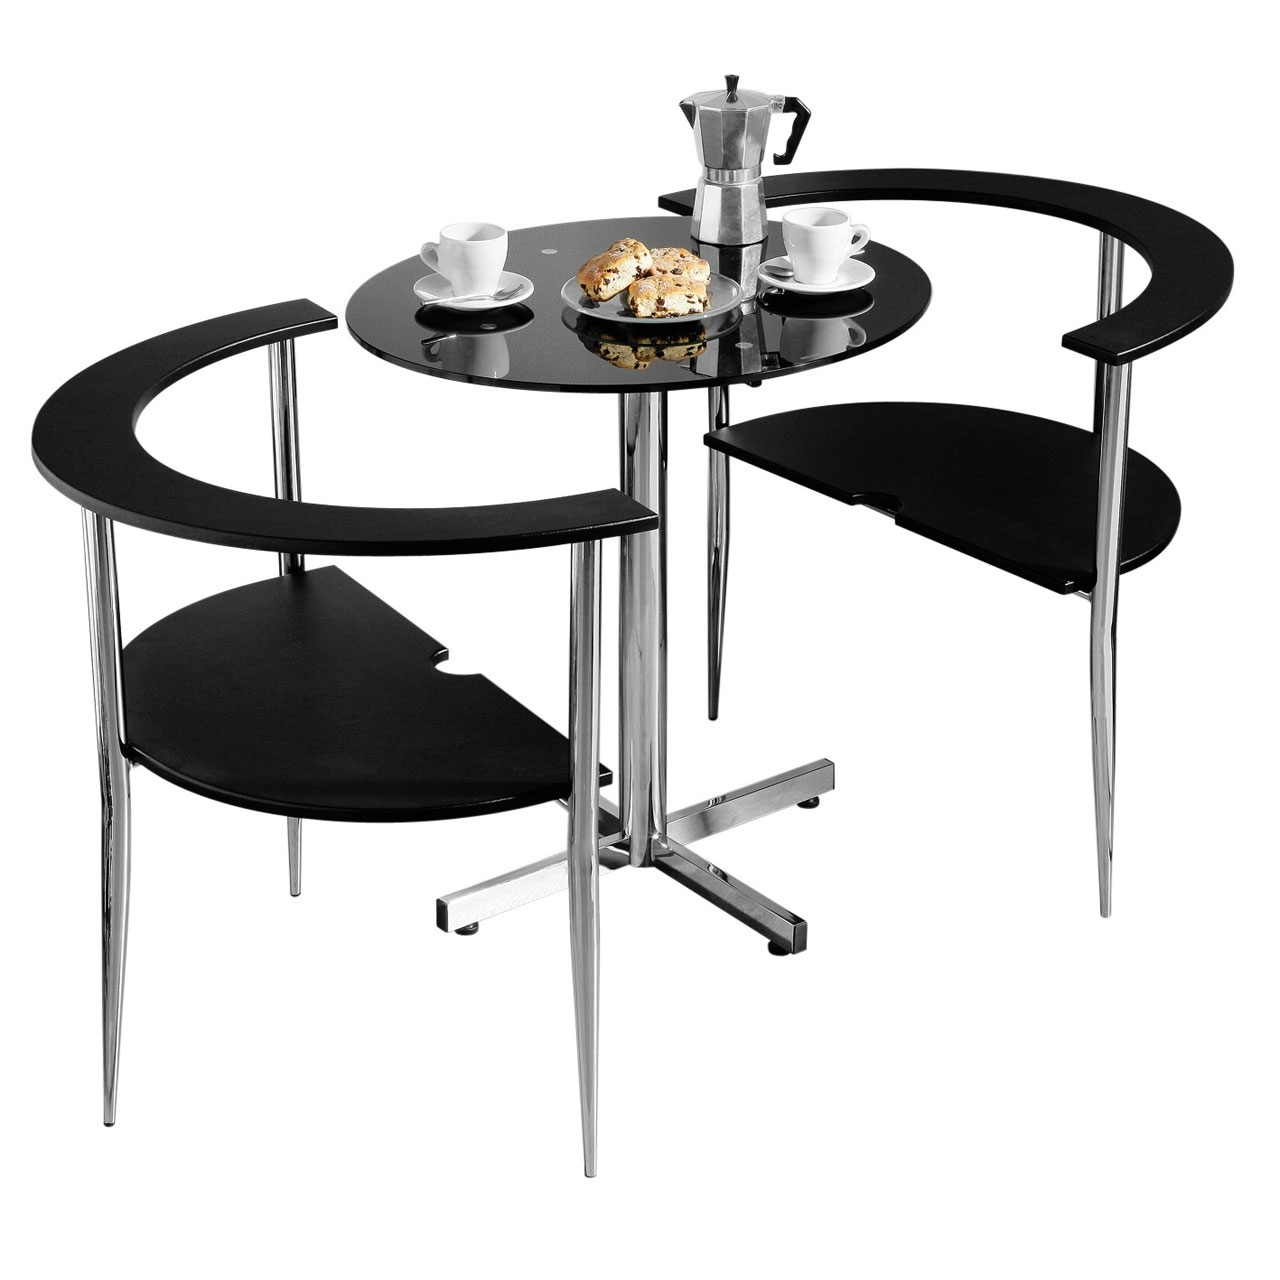 Popular Dining Tables For Two For 3Pc Round Love Dining Set Black Tempered Glass Table Top 2 Chairs (View 5 of 25)